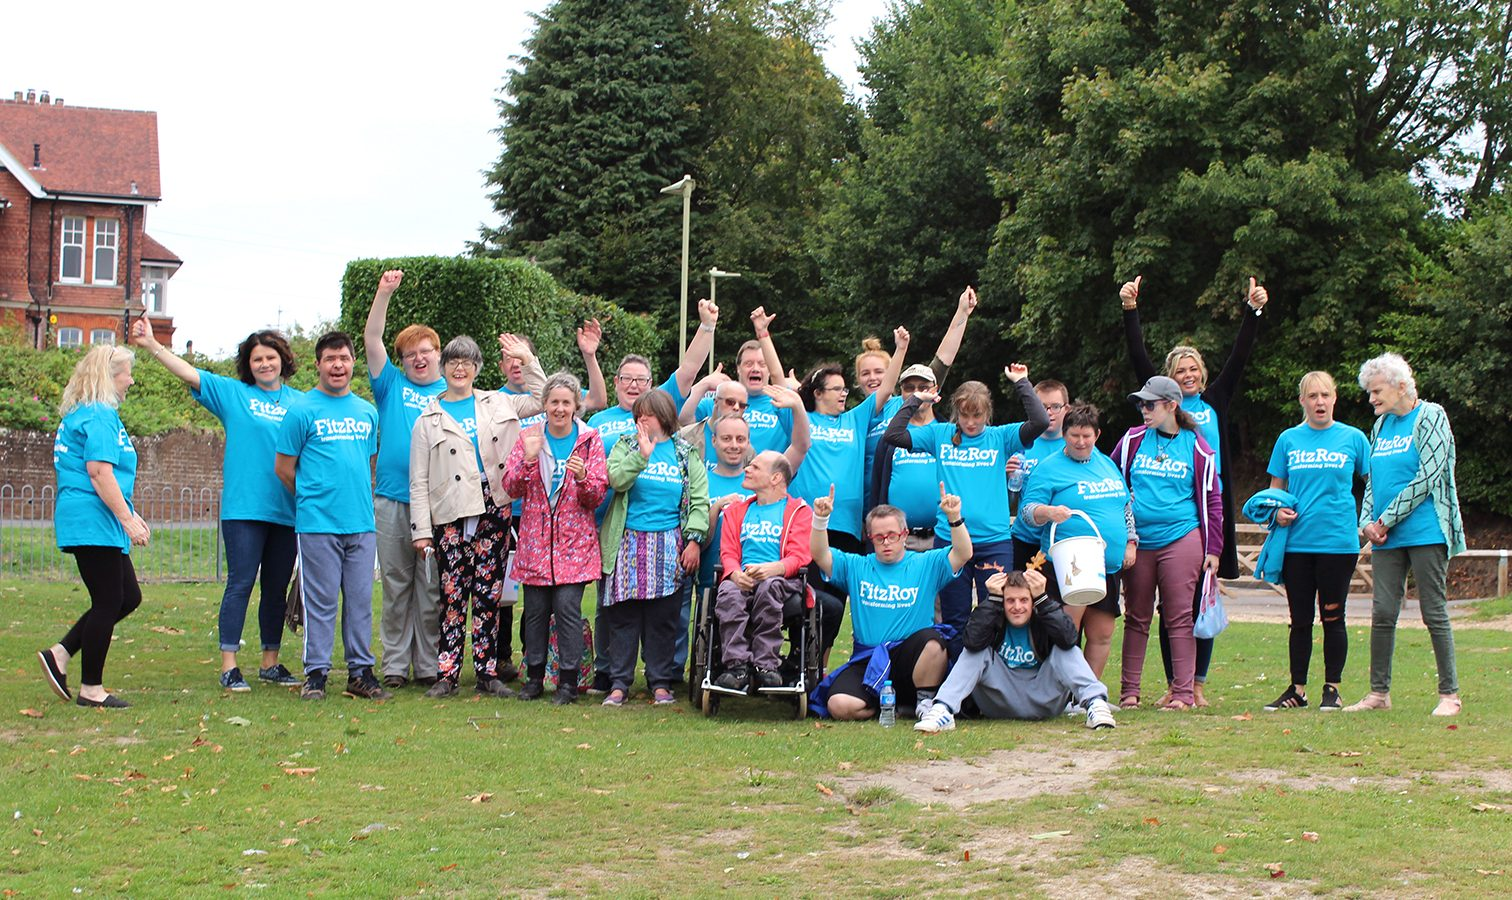 FitzRoy Sponsored Walk